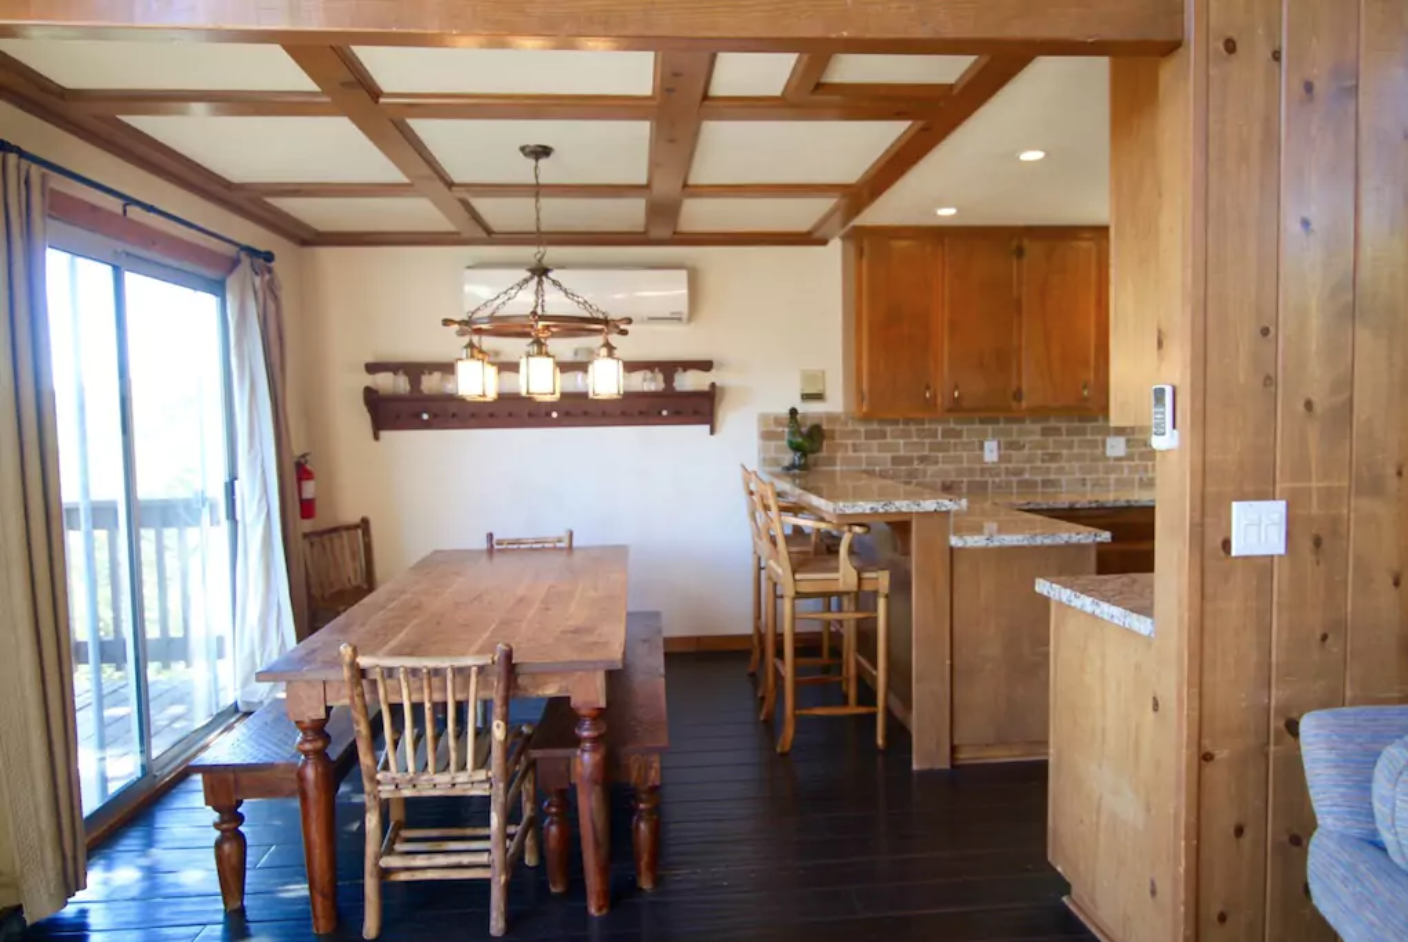 Recently remodeled Kitchen and bathrooms with granite and stone.